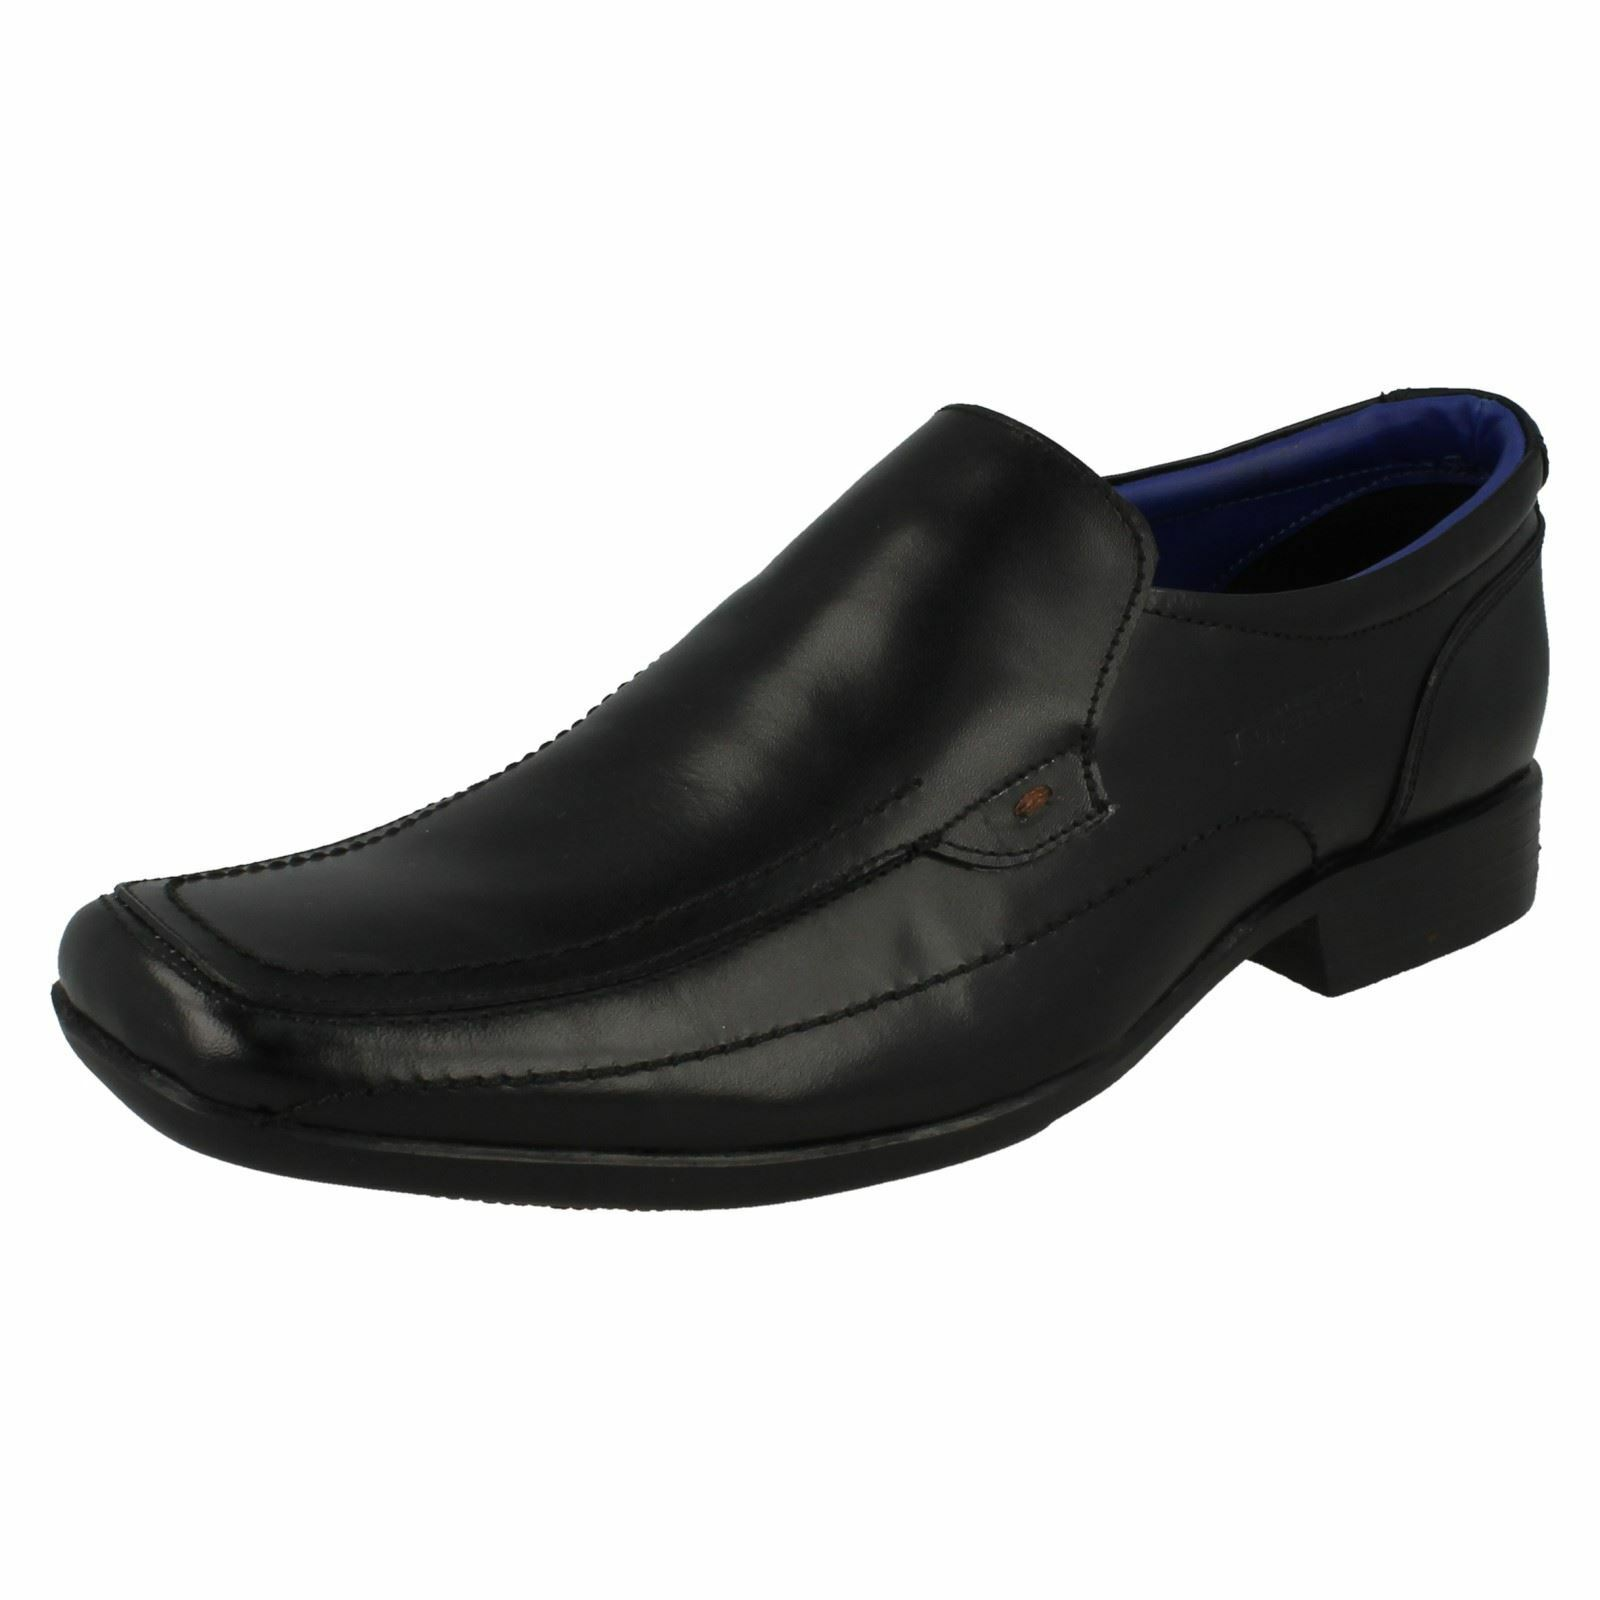 Mens Lambretta Squared Toe Formal Slip On Leather Heeled shoes 20287